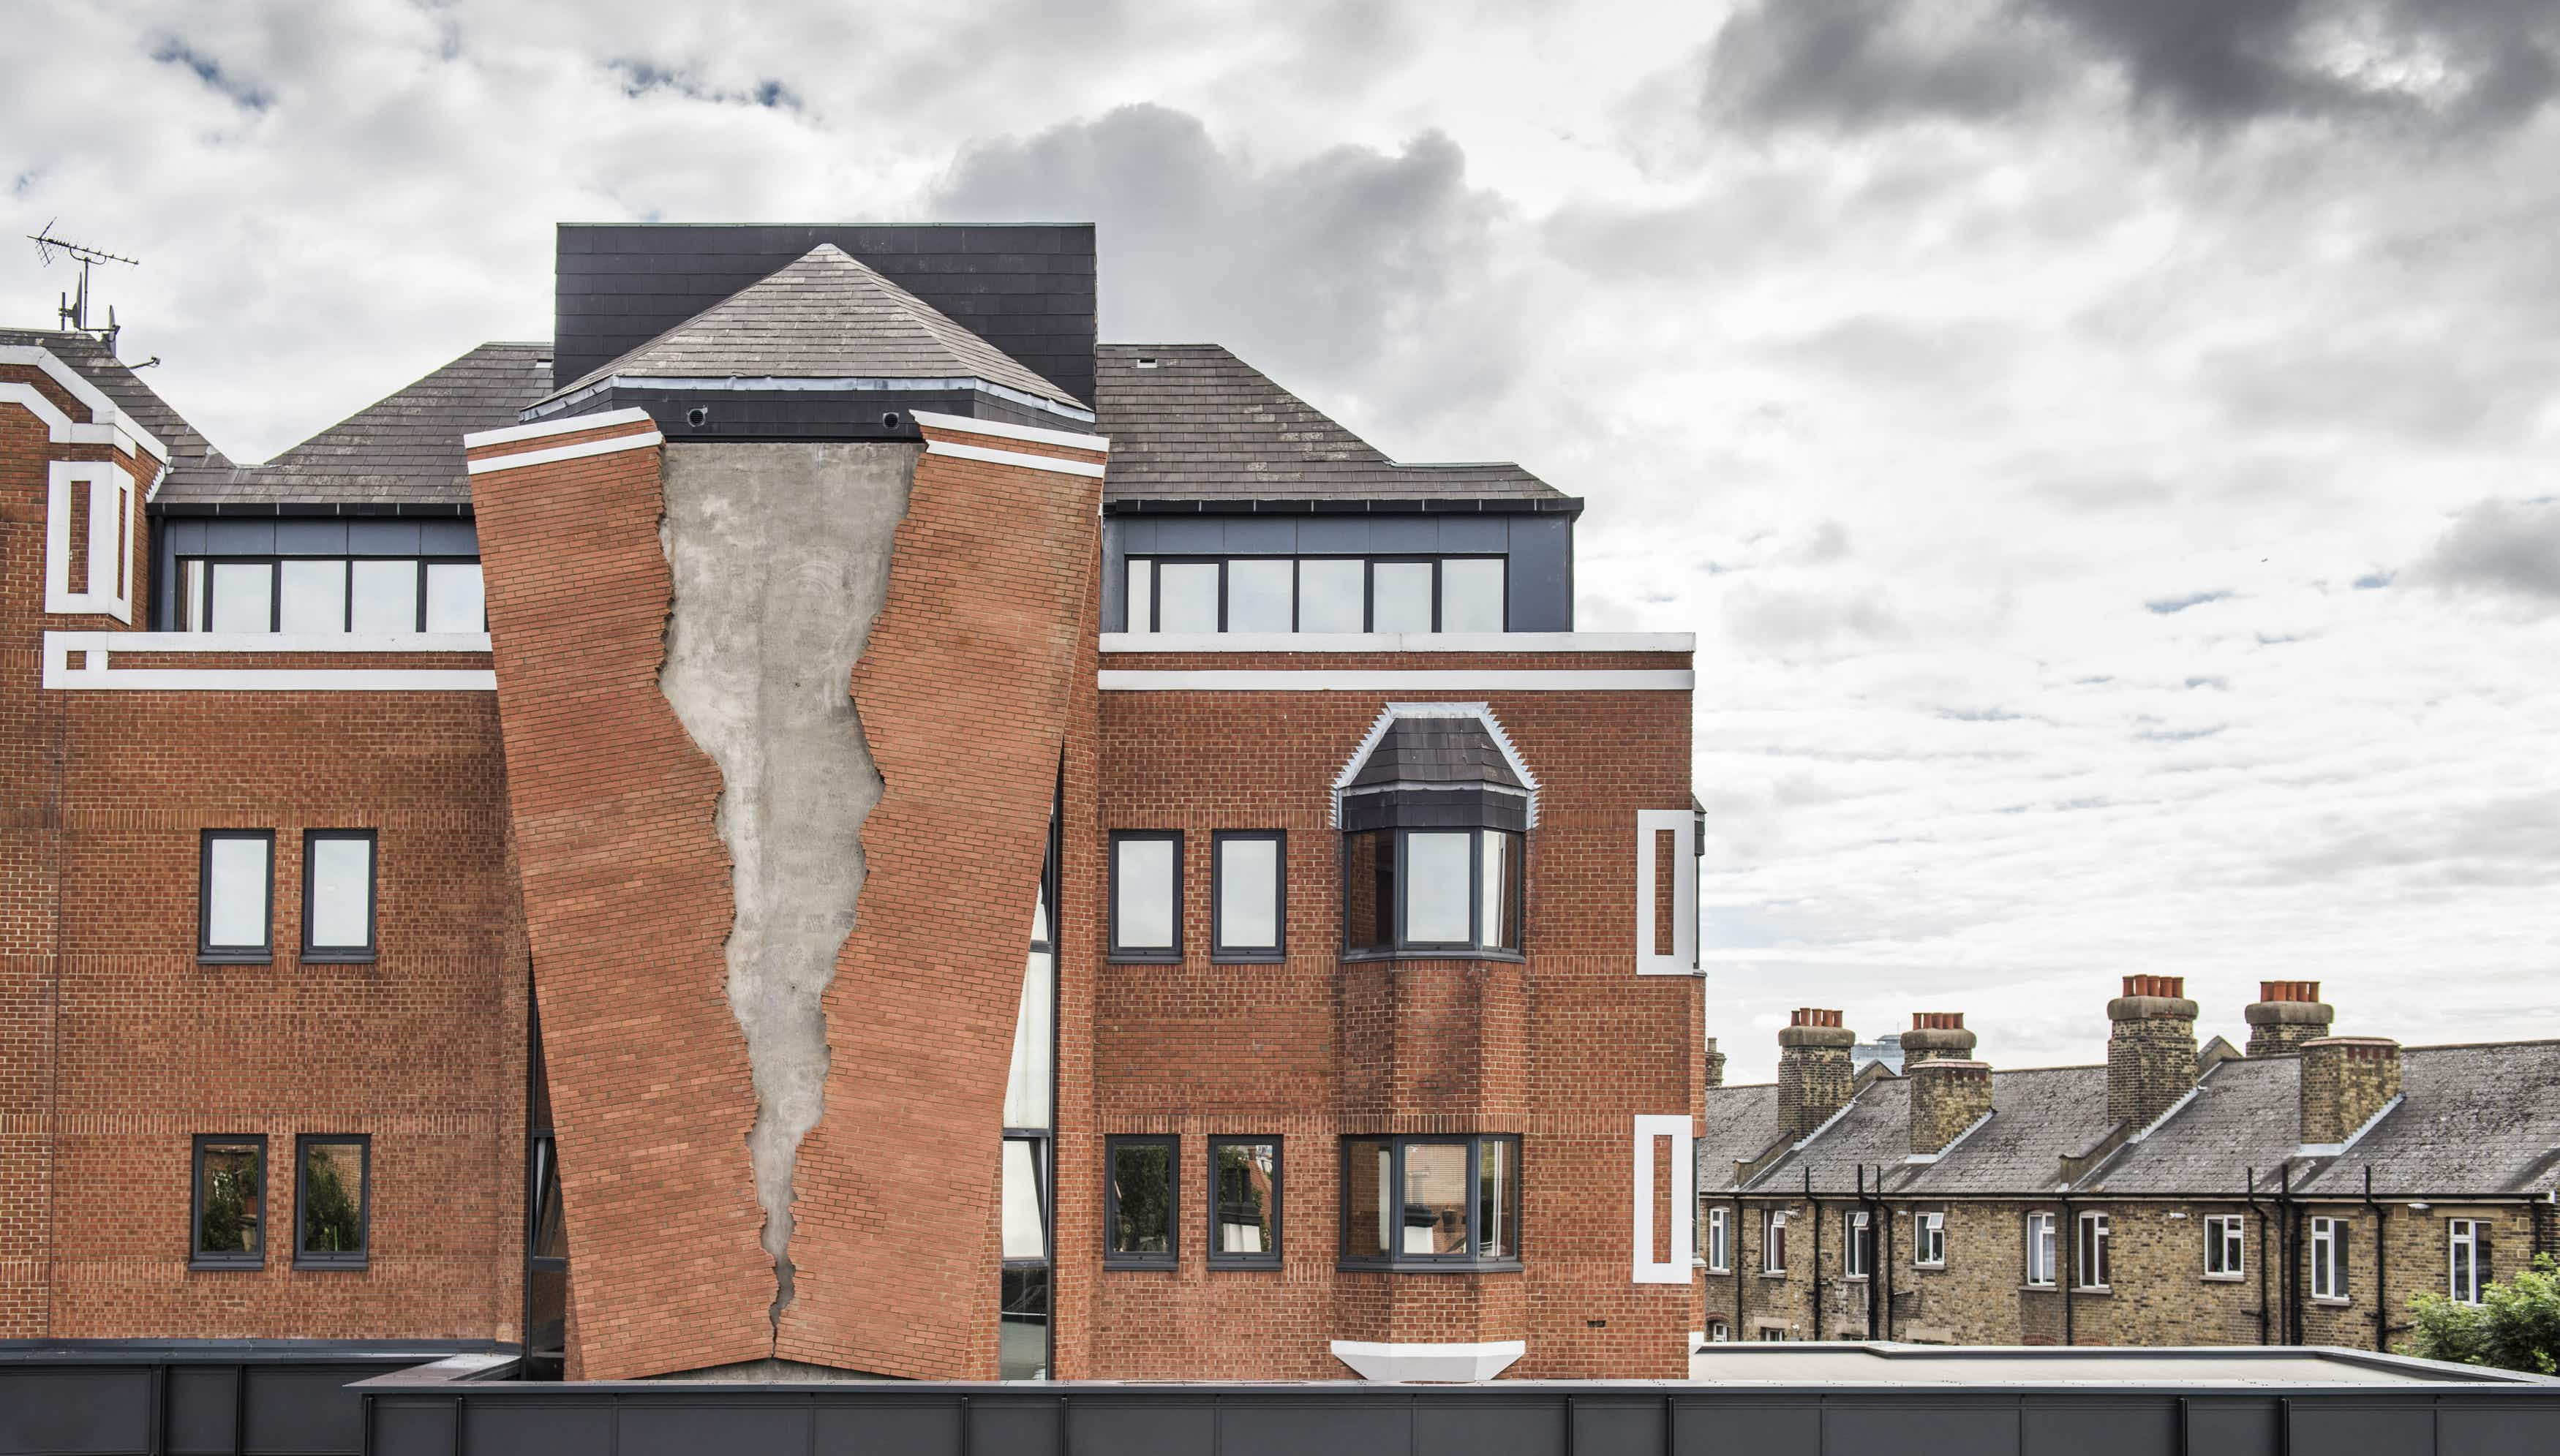 The facade of a London building has been torn apart in this new permanent installation